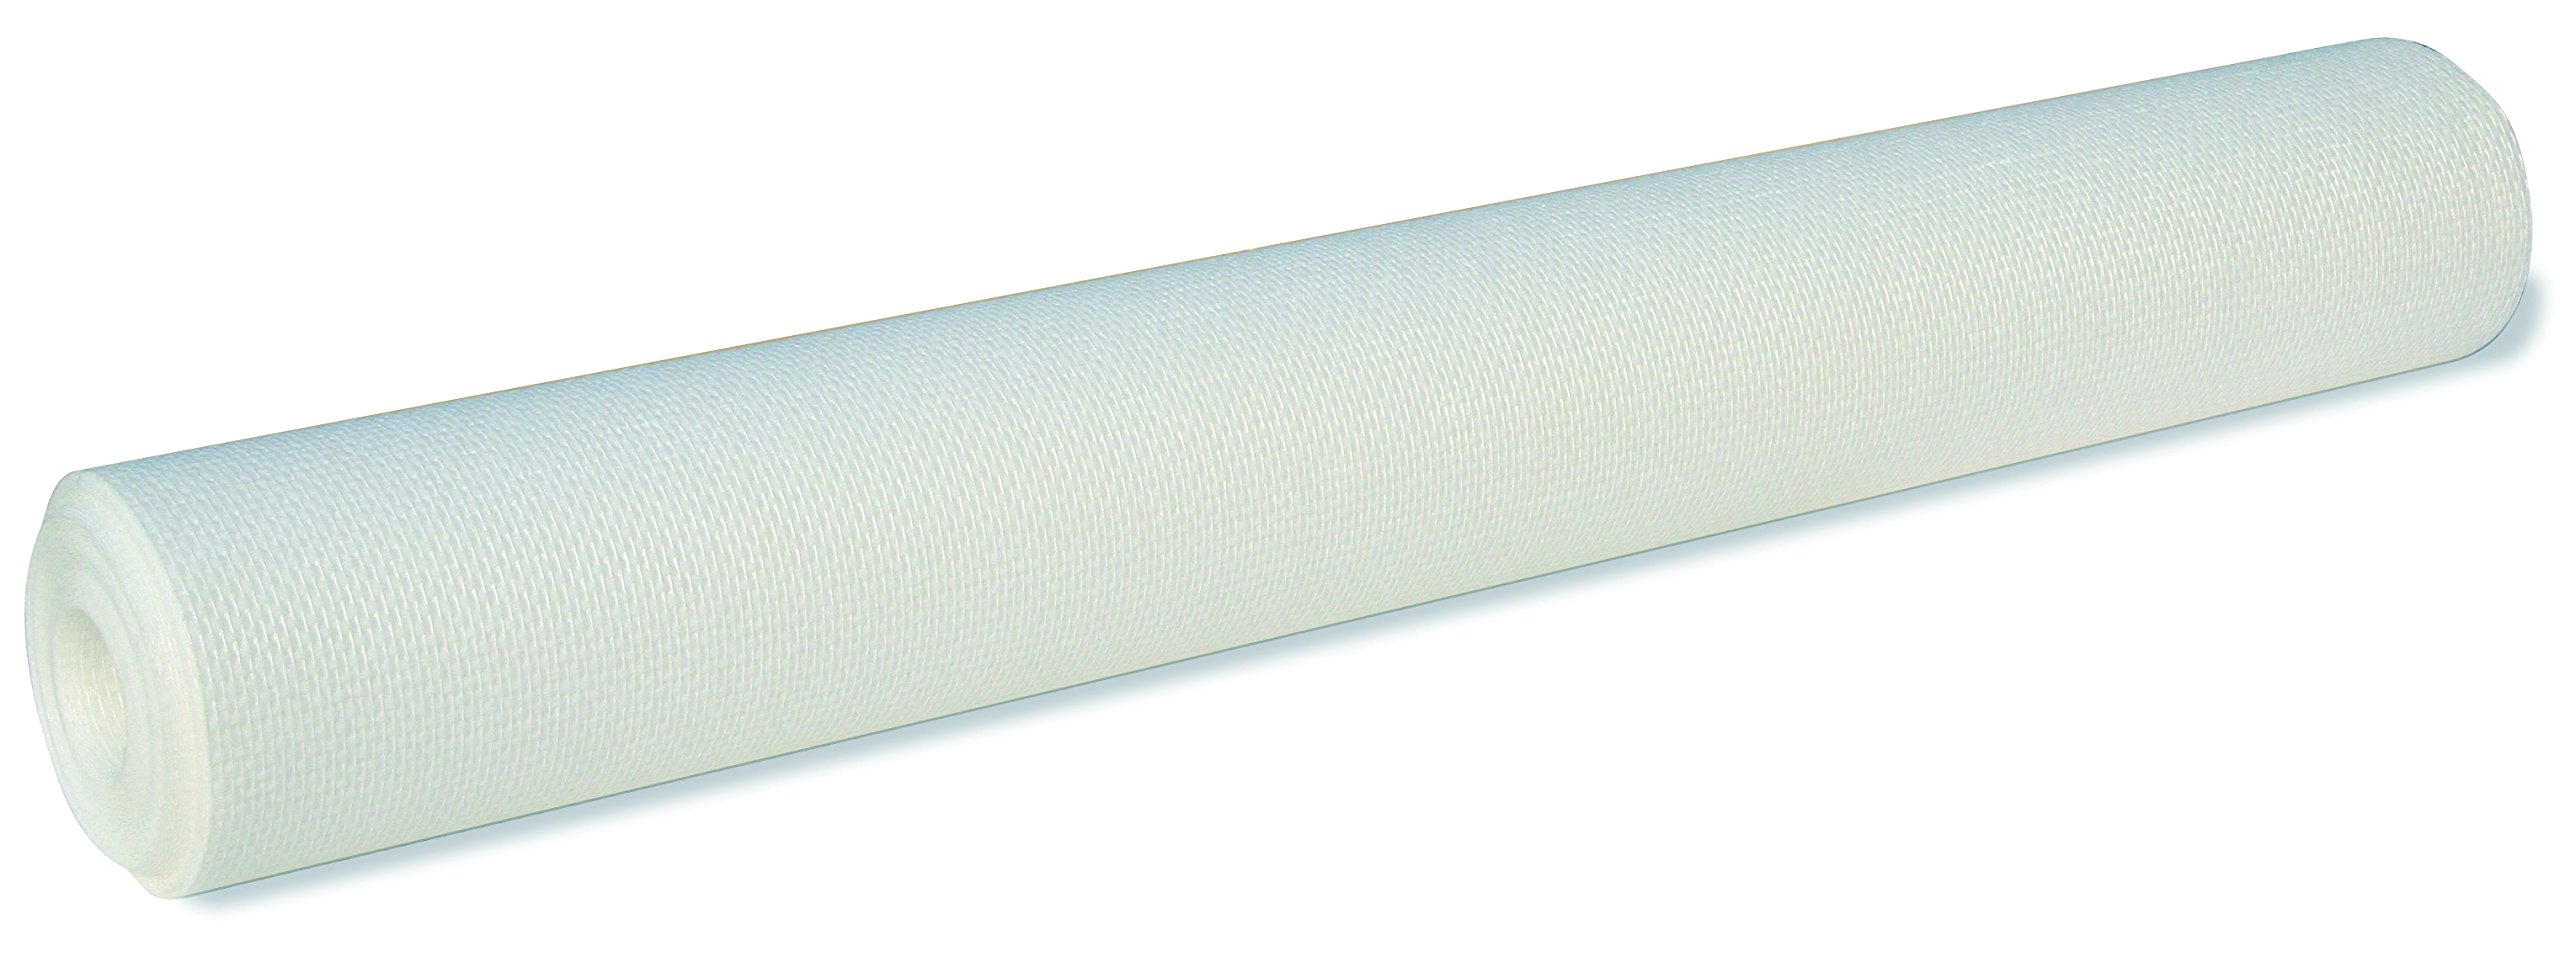 Semin Super Eco T 025 Canvas Smooth Mesh for 50 x 1 m